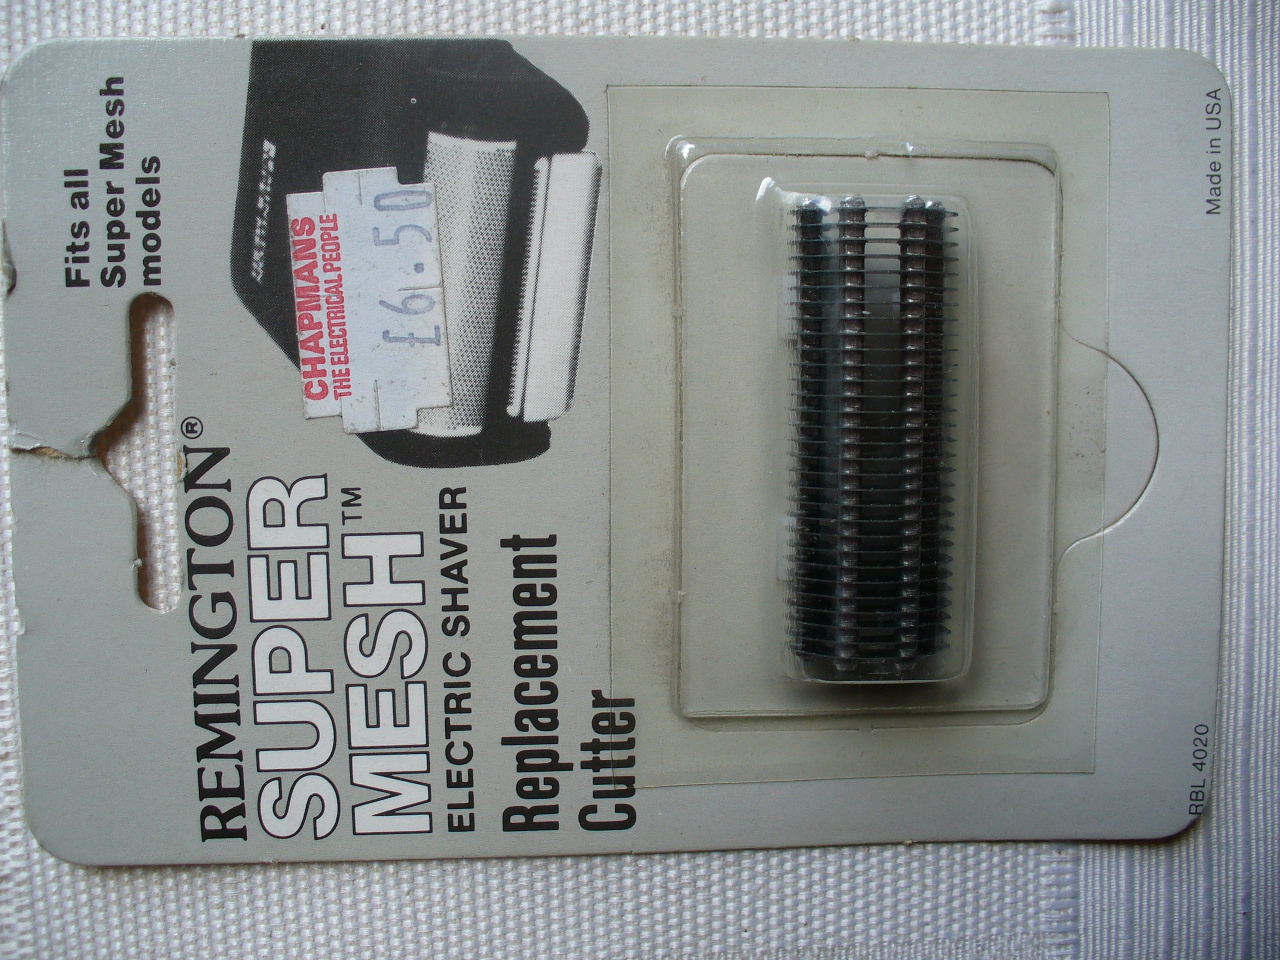 Remington RBL4020 Cutter Unit for Super Mesh Models